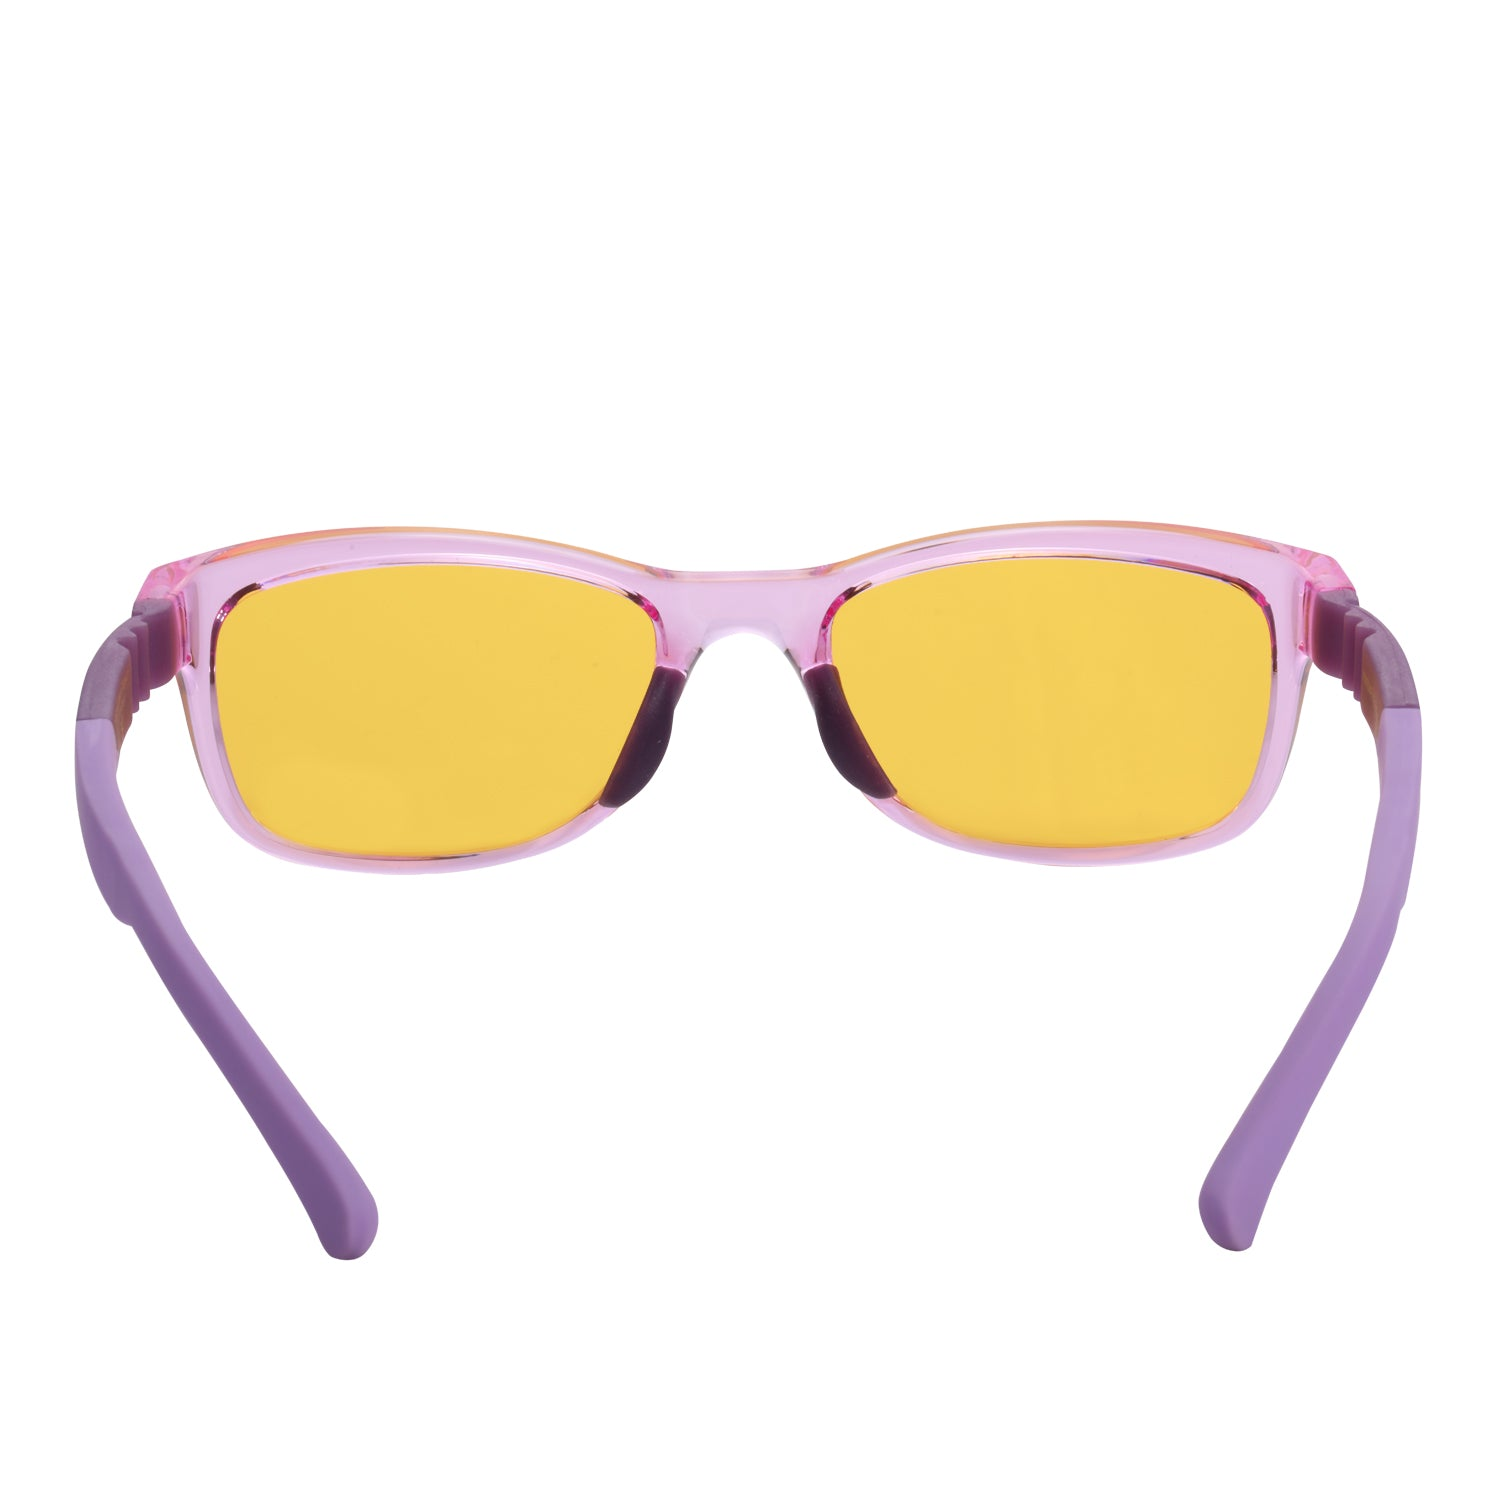 PRiSMA KiDS Blue Light Blocking Glasses for Children & Small Adults -  Strong and flexible nylon frame - pink